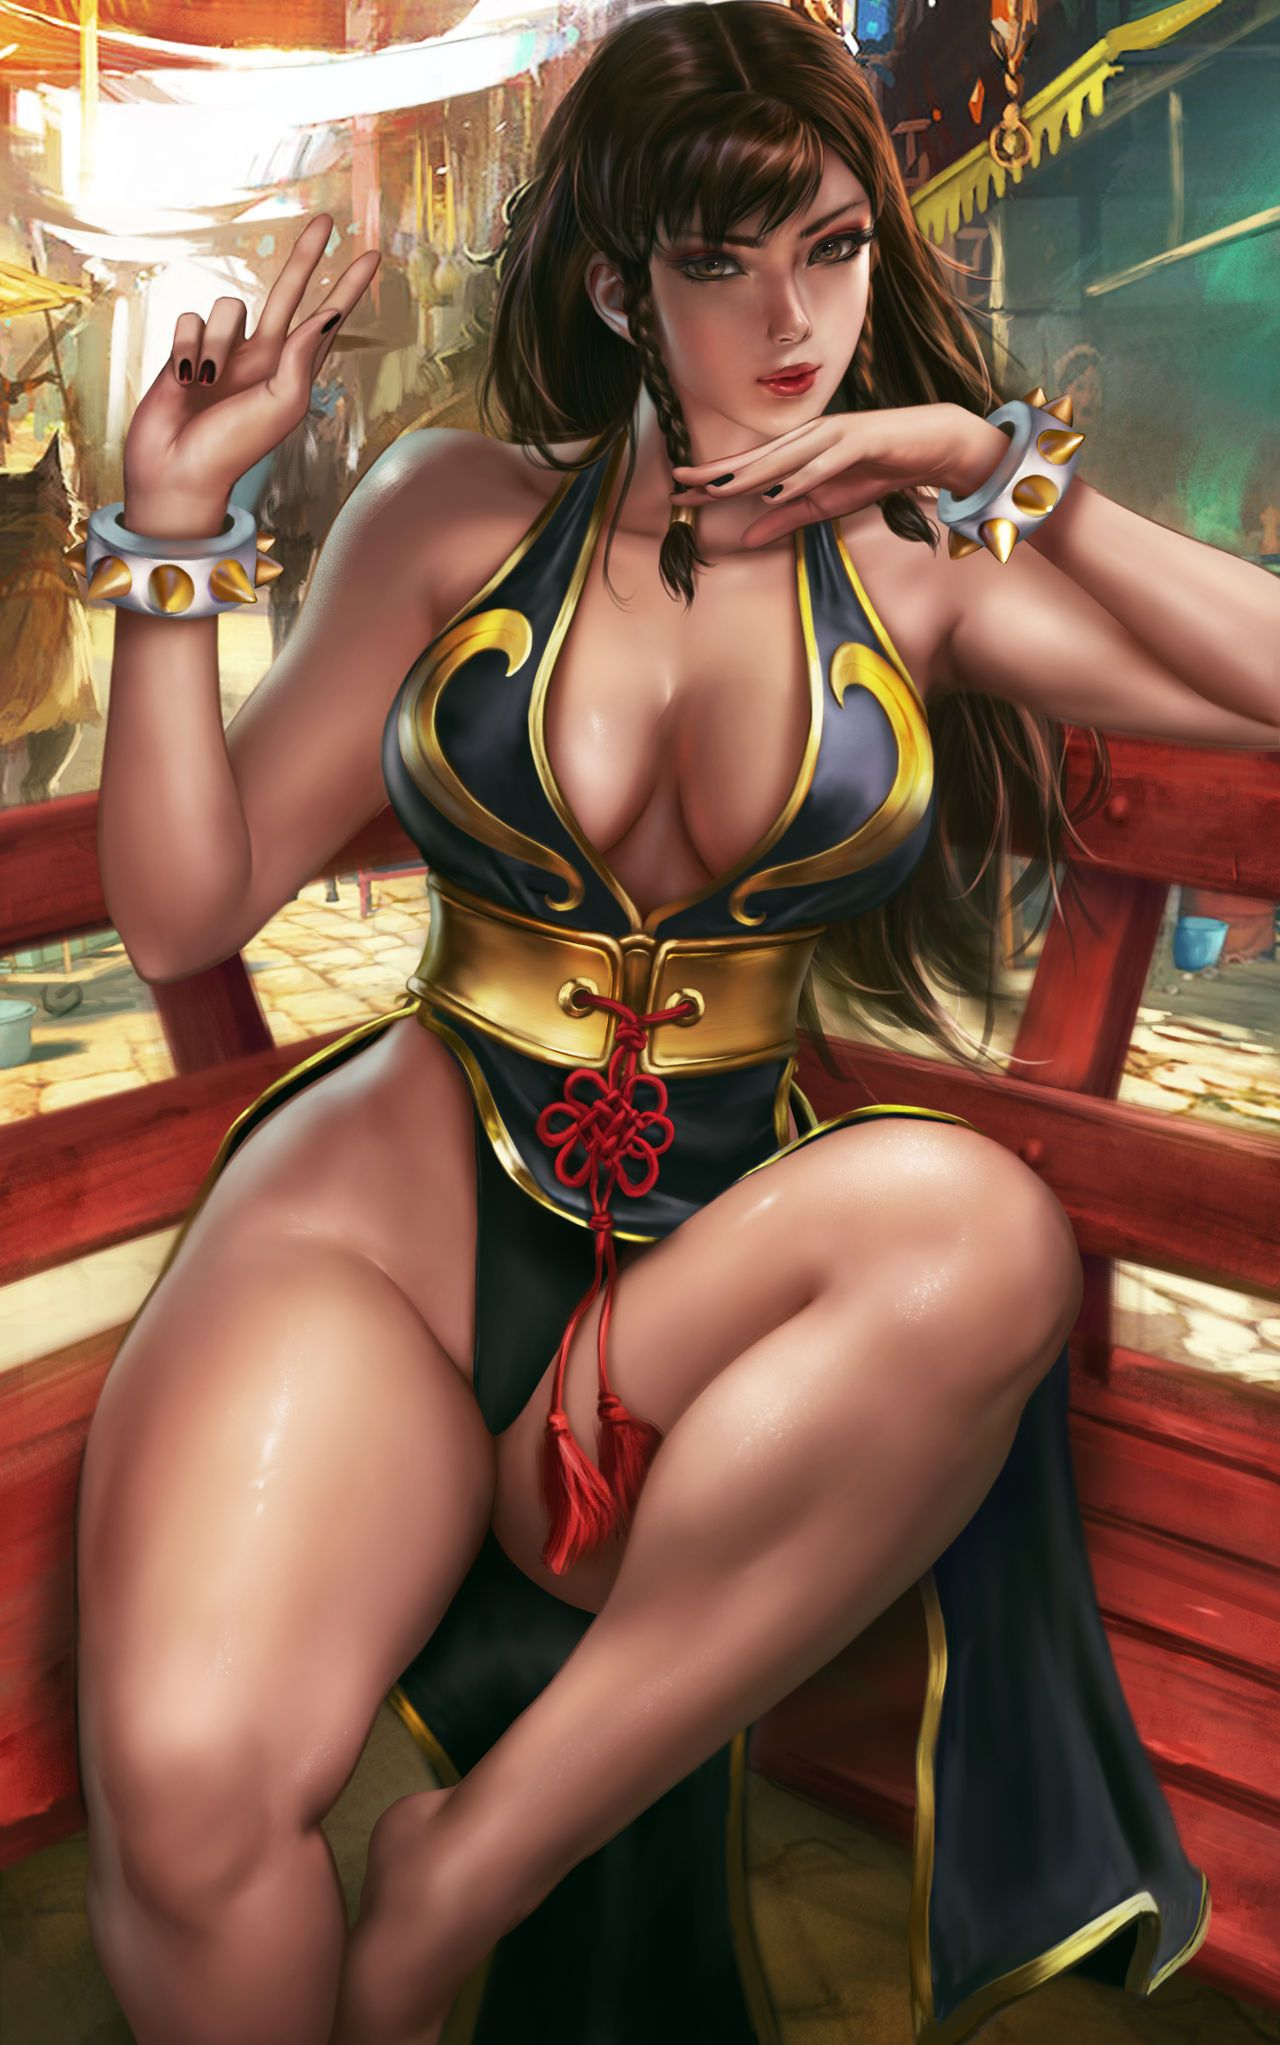 Pictures Of Chun Li Naked